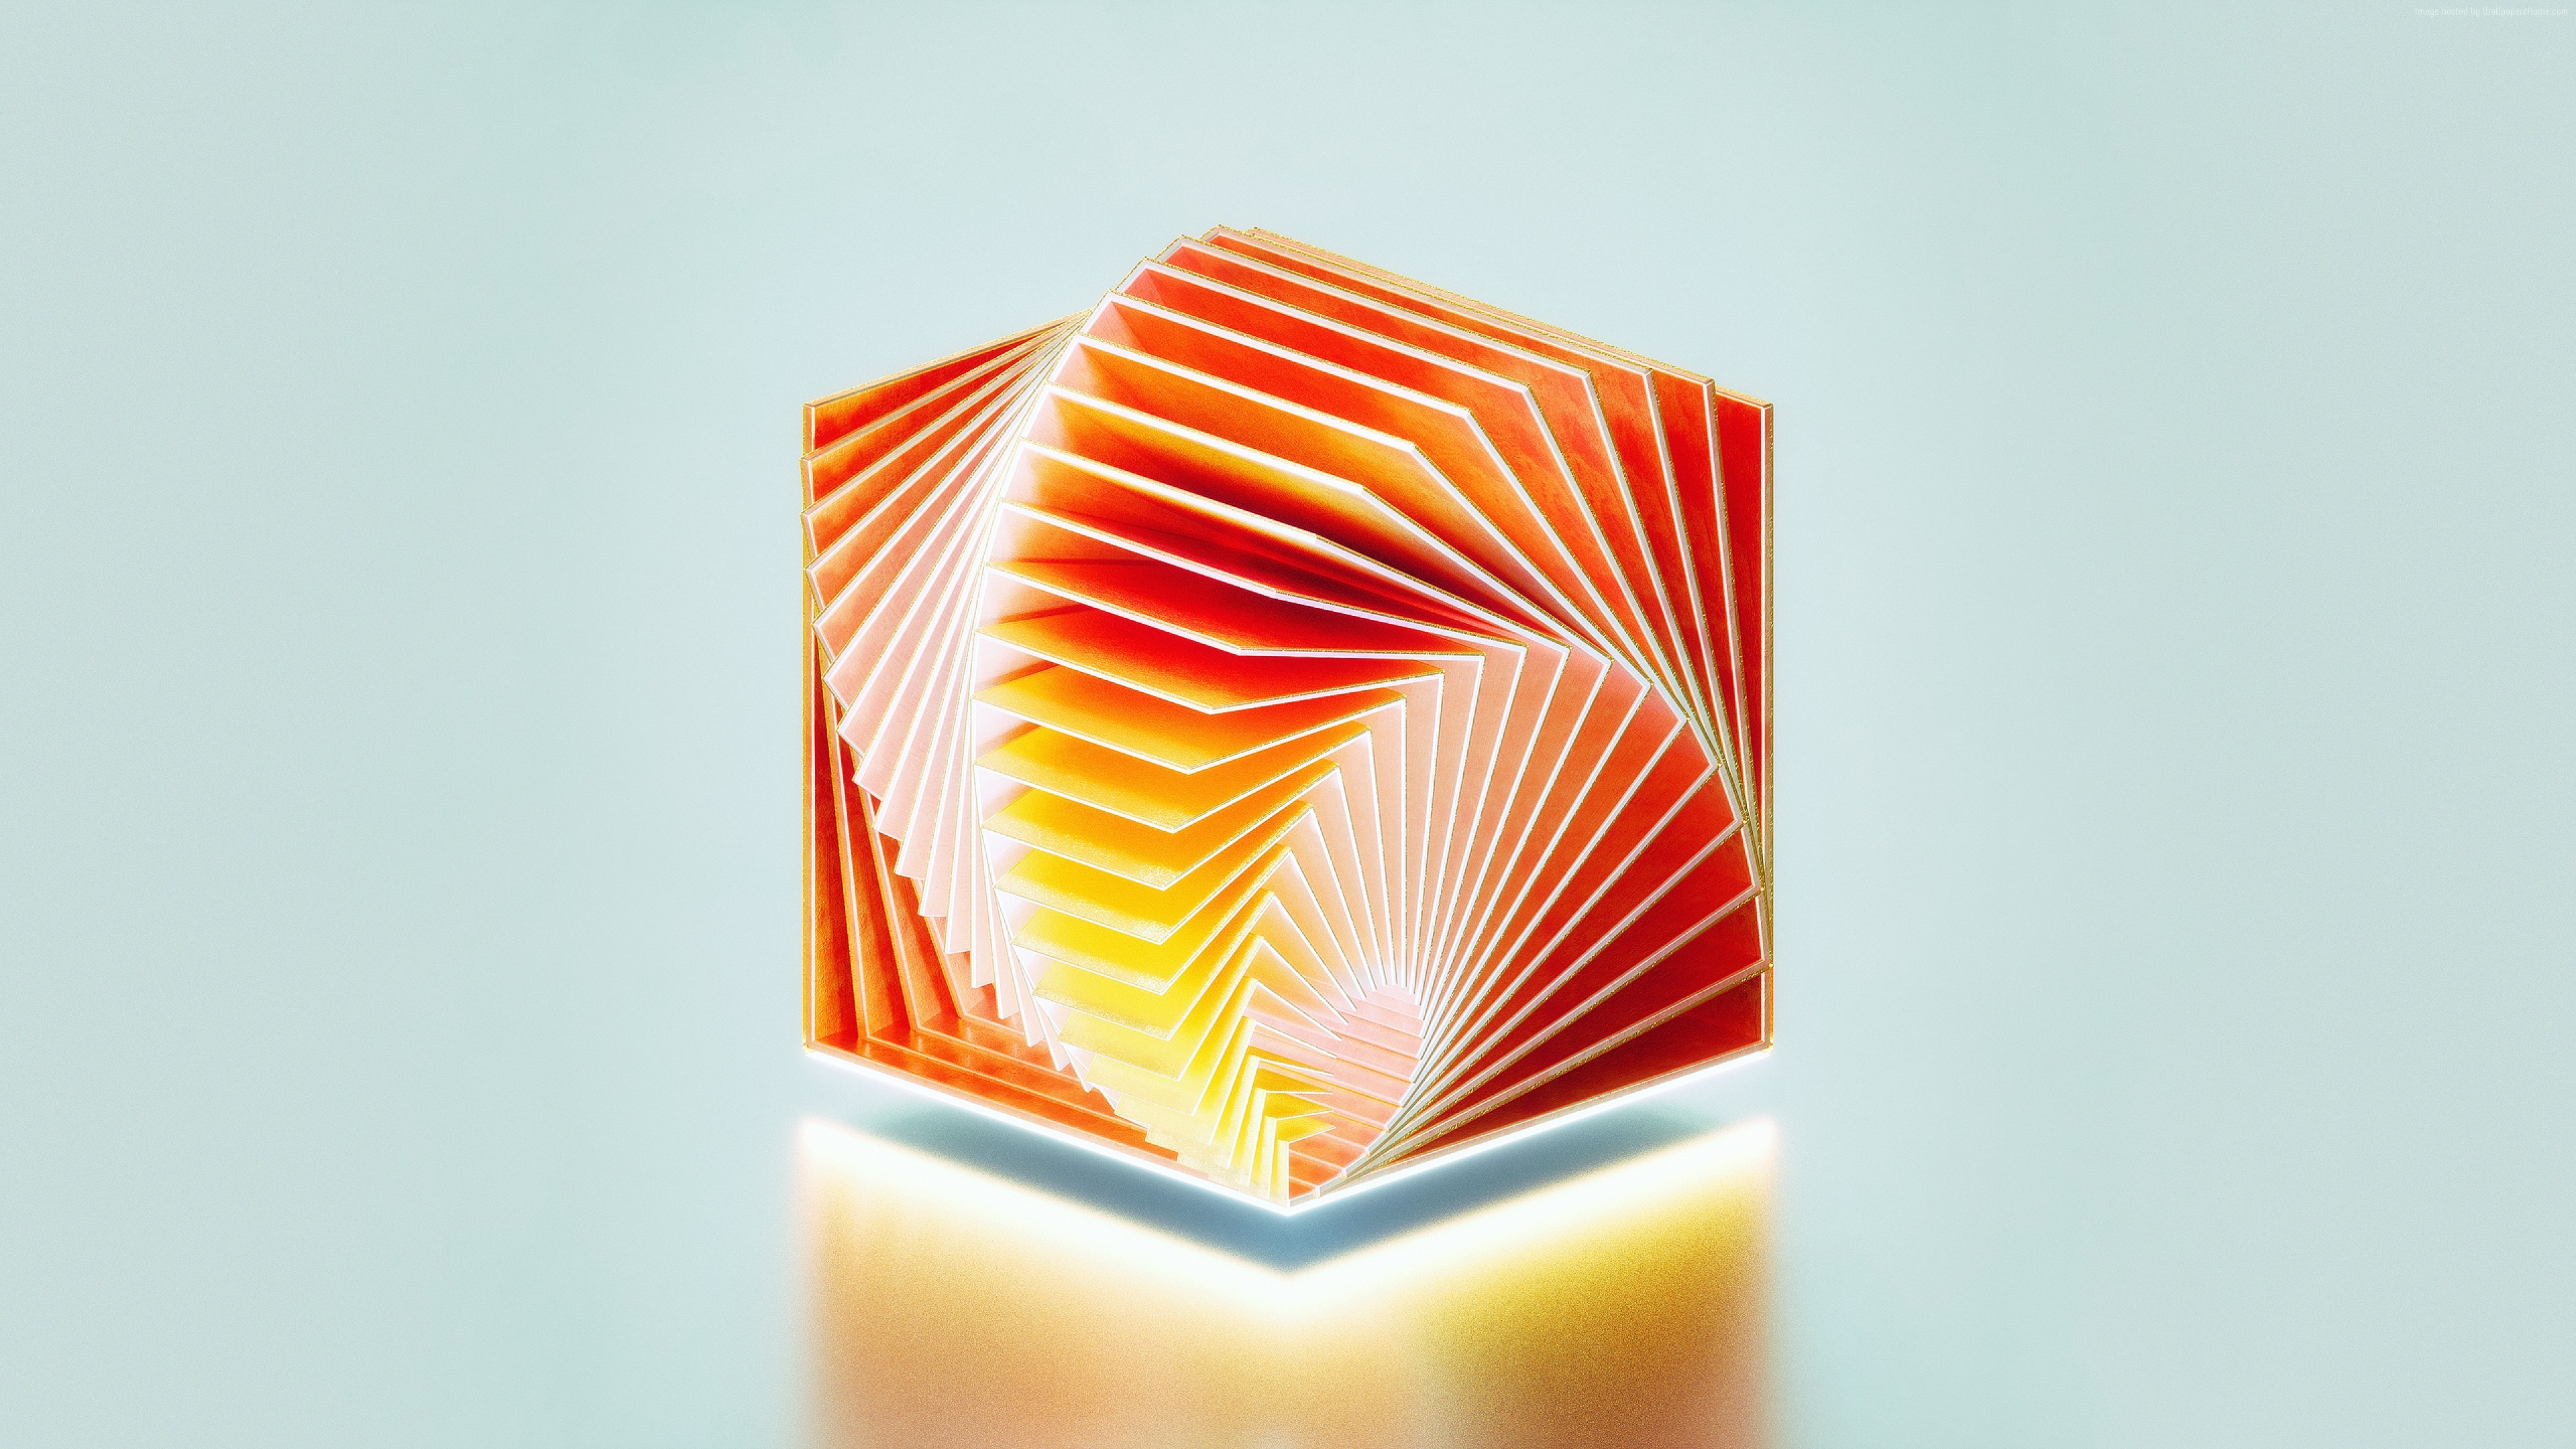 Wallpaper HD, 3D, Medaltations, cube, abstract, OS